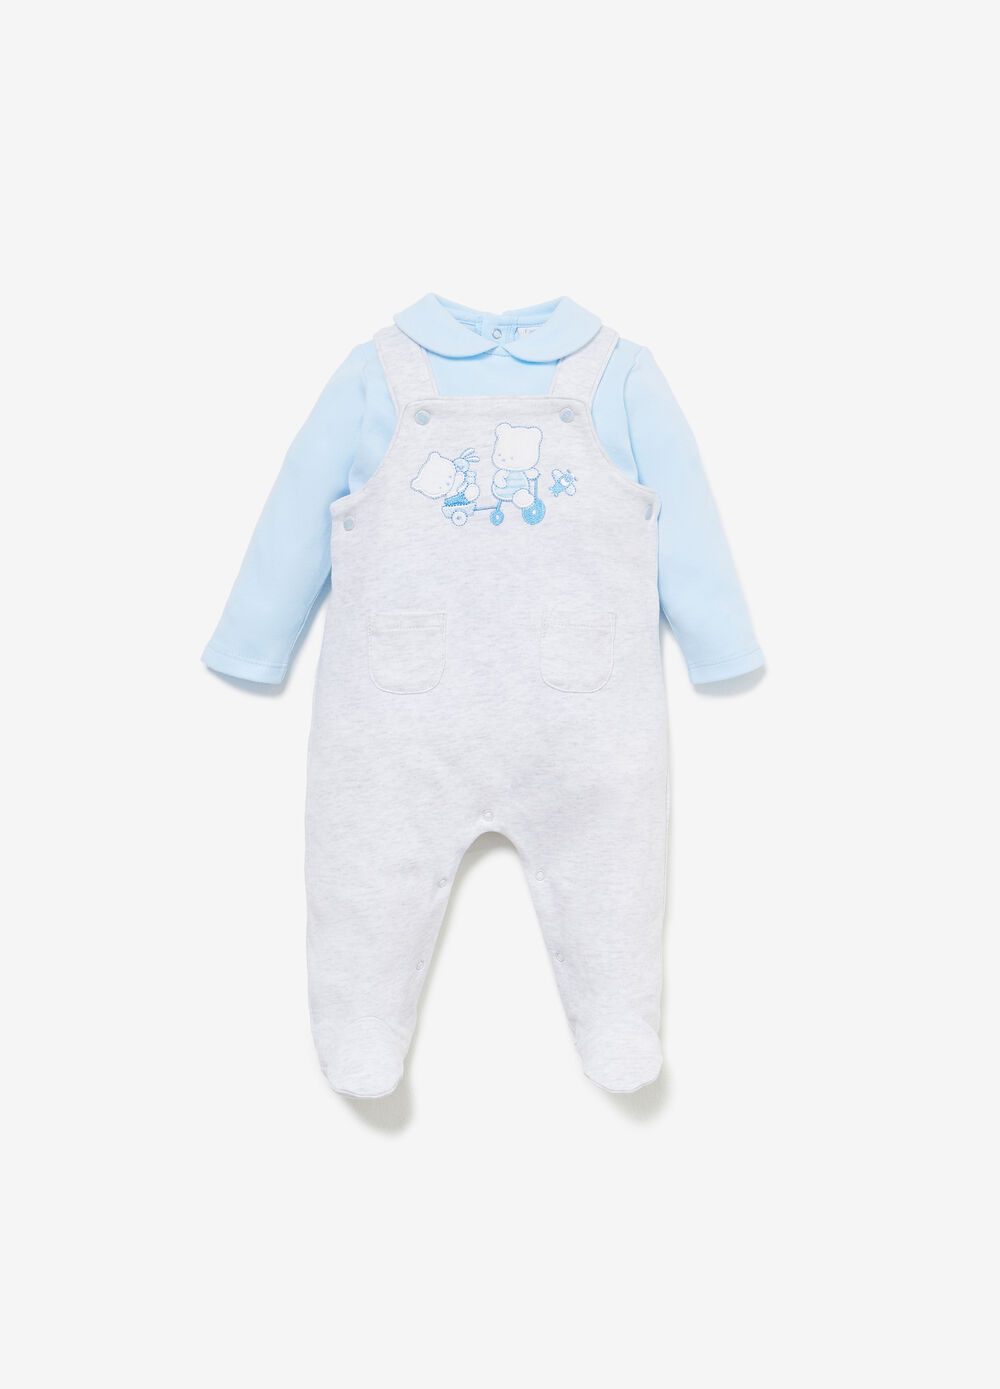 Winnie the Pooh cotton outfit